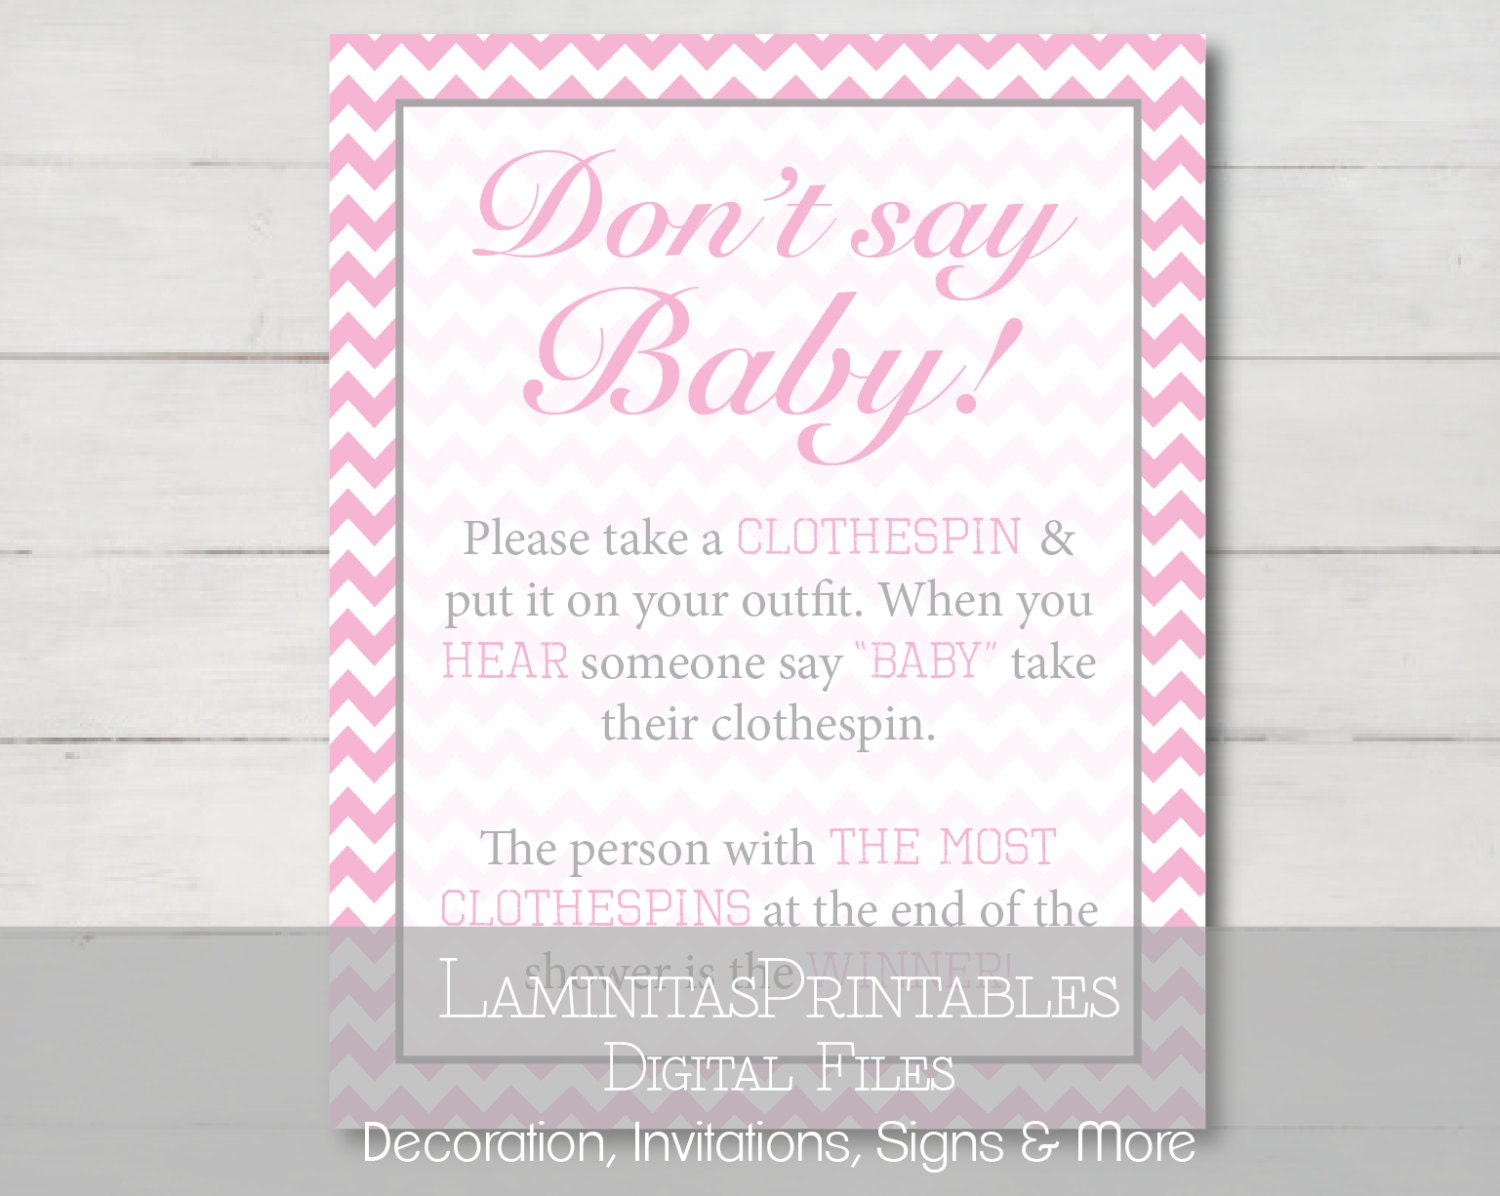 Remarkable image with regard to don't say baby game sign free printable